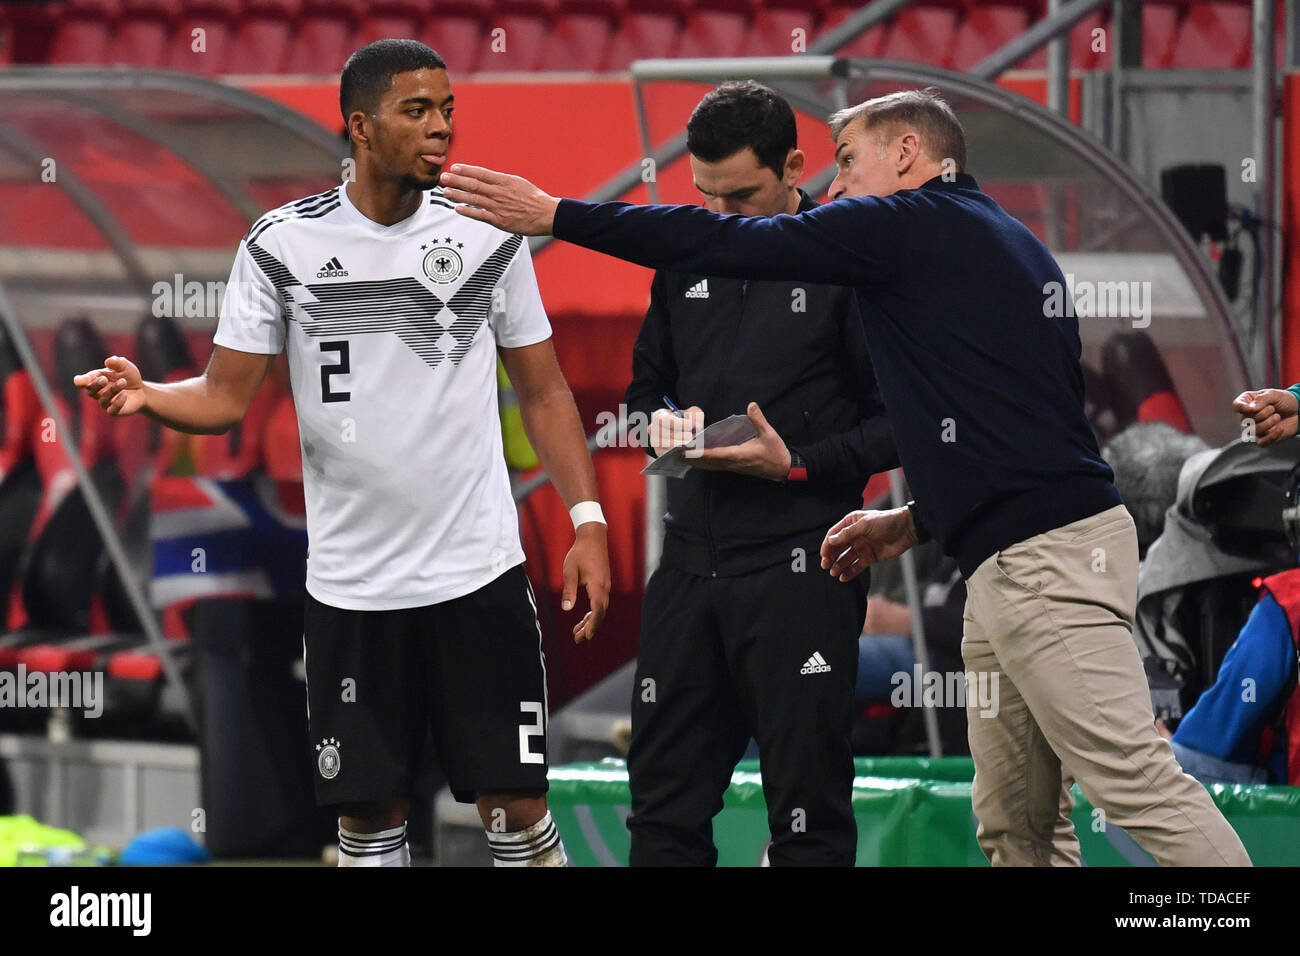 Preview UEFA Under21 European Championship in Italy/SanMarino from 16.-30.06.2019. Archive picture: Stefan KUNTZ, coach (GER) with Benjamin HENRICHS (GER), gesture, gives instructions. Soccer U-21 Laenderspiel.EM Qualification, Germany (GER) - Norway (NOR) 2-1, on 12.10.2018 in Ingolstadt/AUDI SPORTPARK. DFB REGULATIONS PROHIBIT ANY USE OF PHOTOGRAPH AS IMAGE SEQUENCES AND/OR QUASI VIDEO. | Usage worldwide Stock Photo